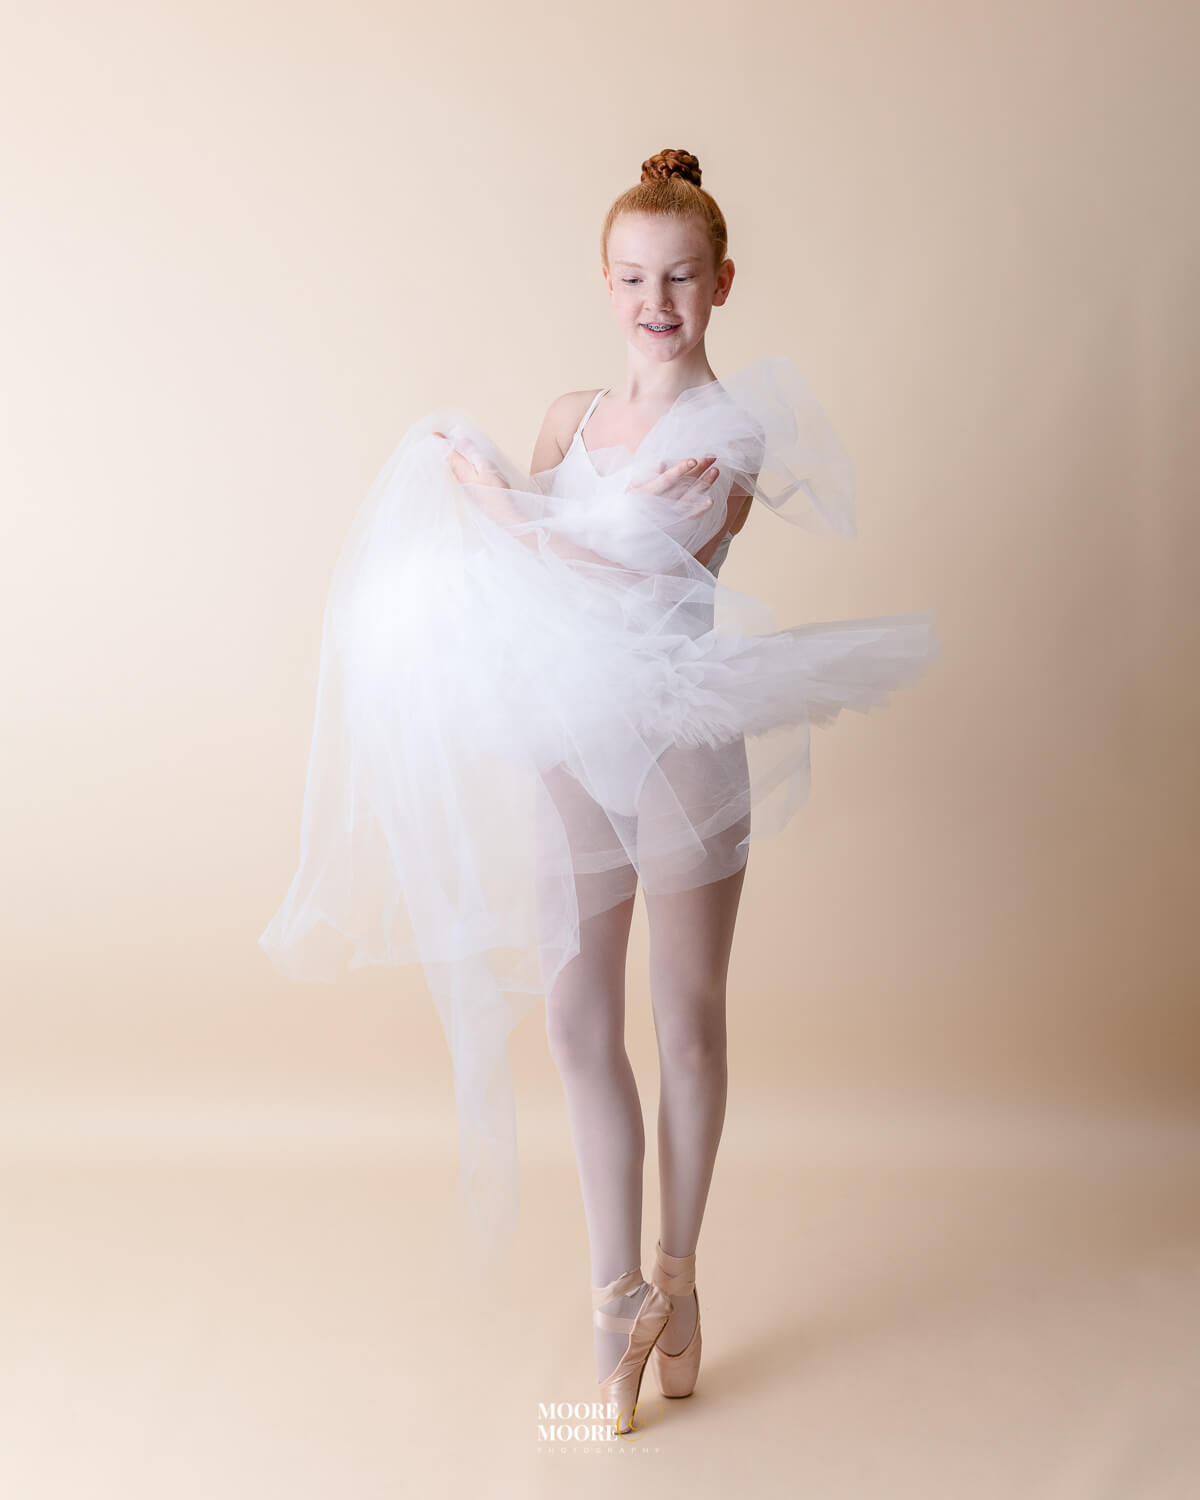 Ballet Dancer on pointe shoes Moore & Moore Photography